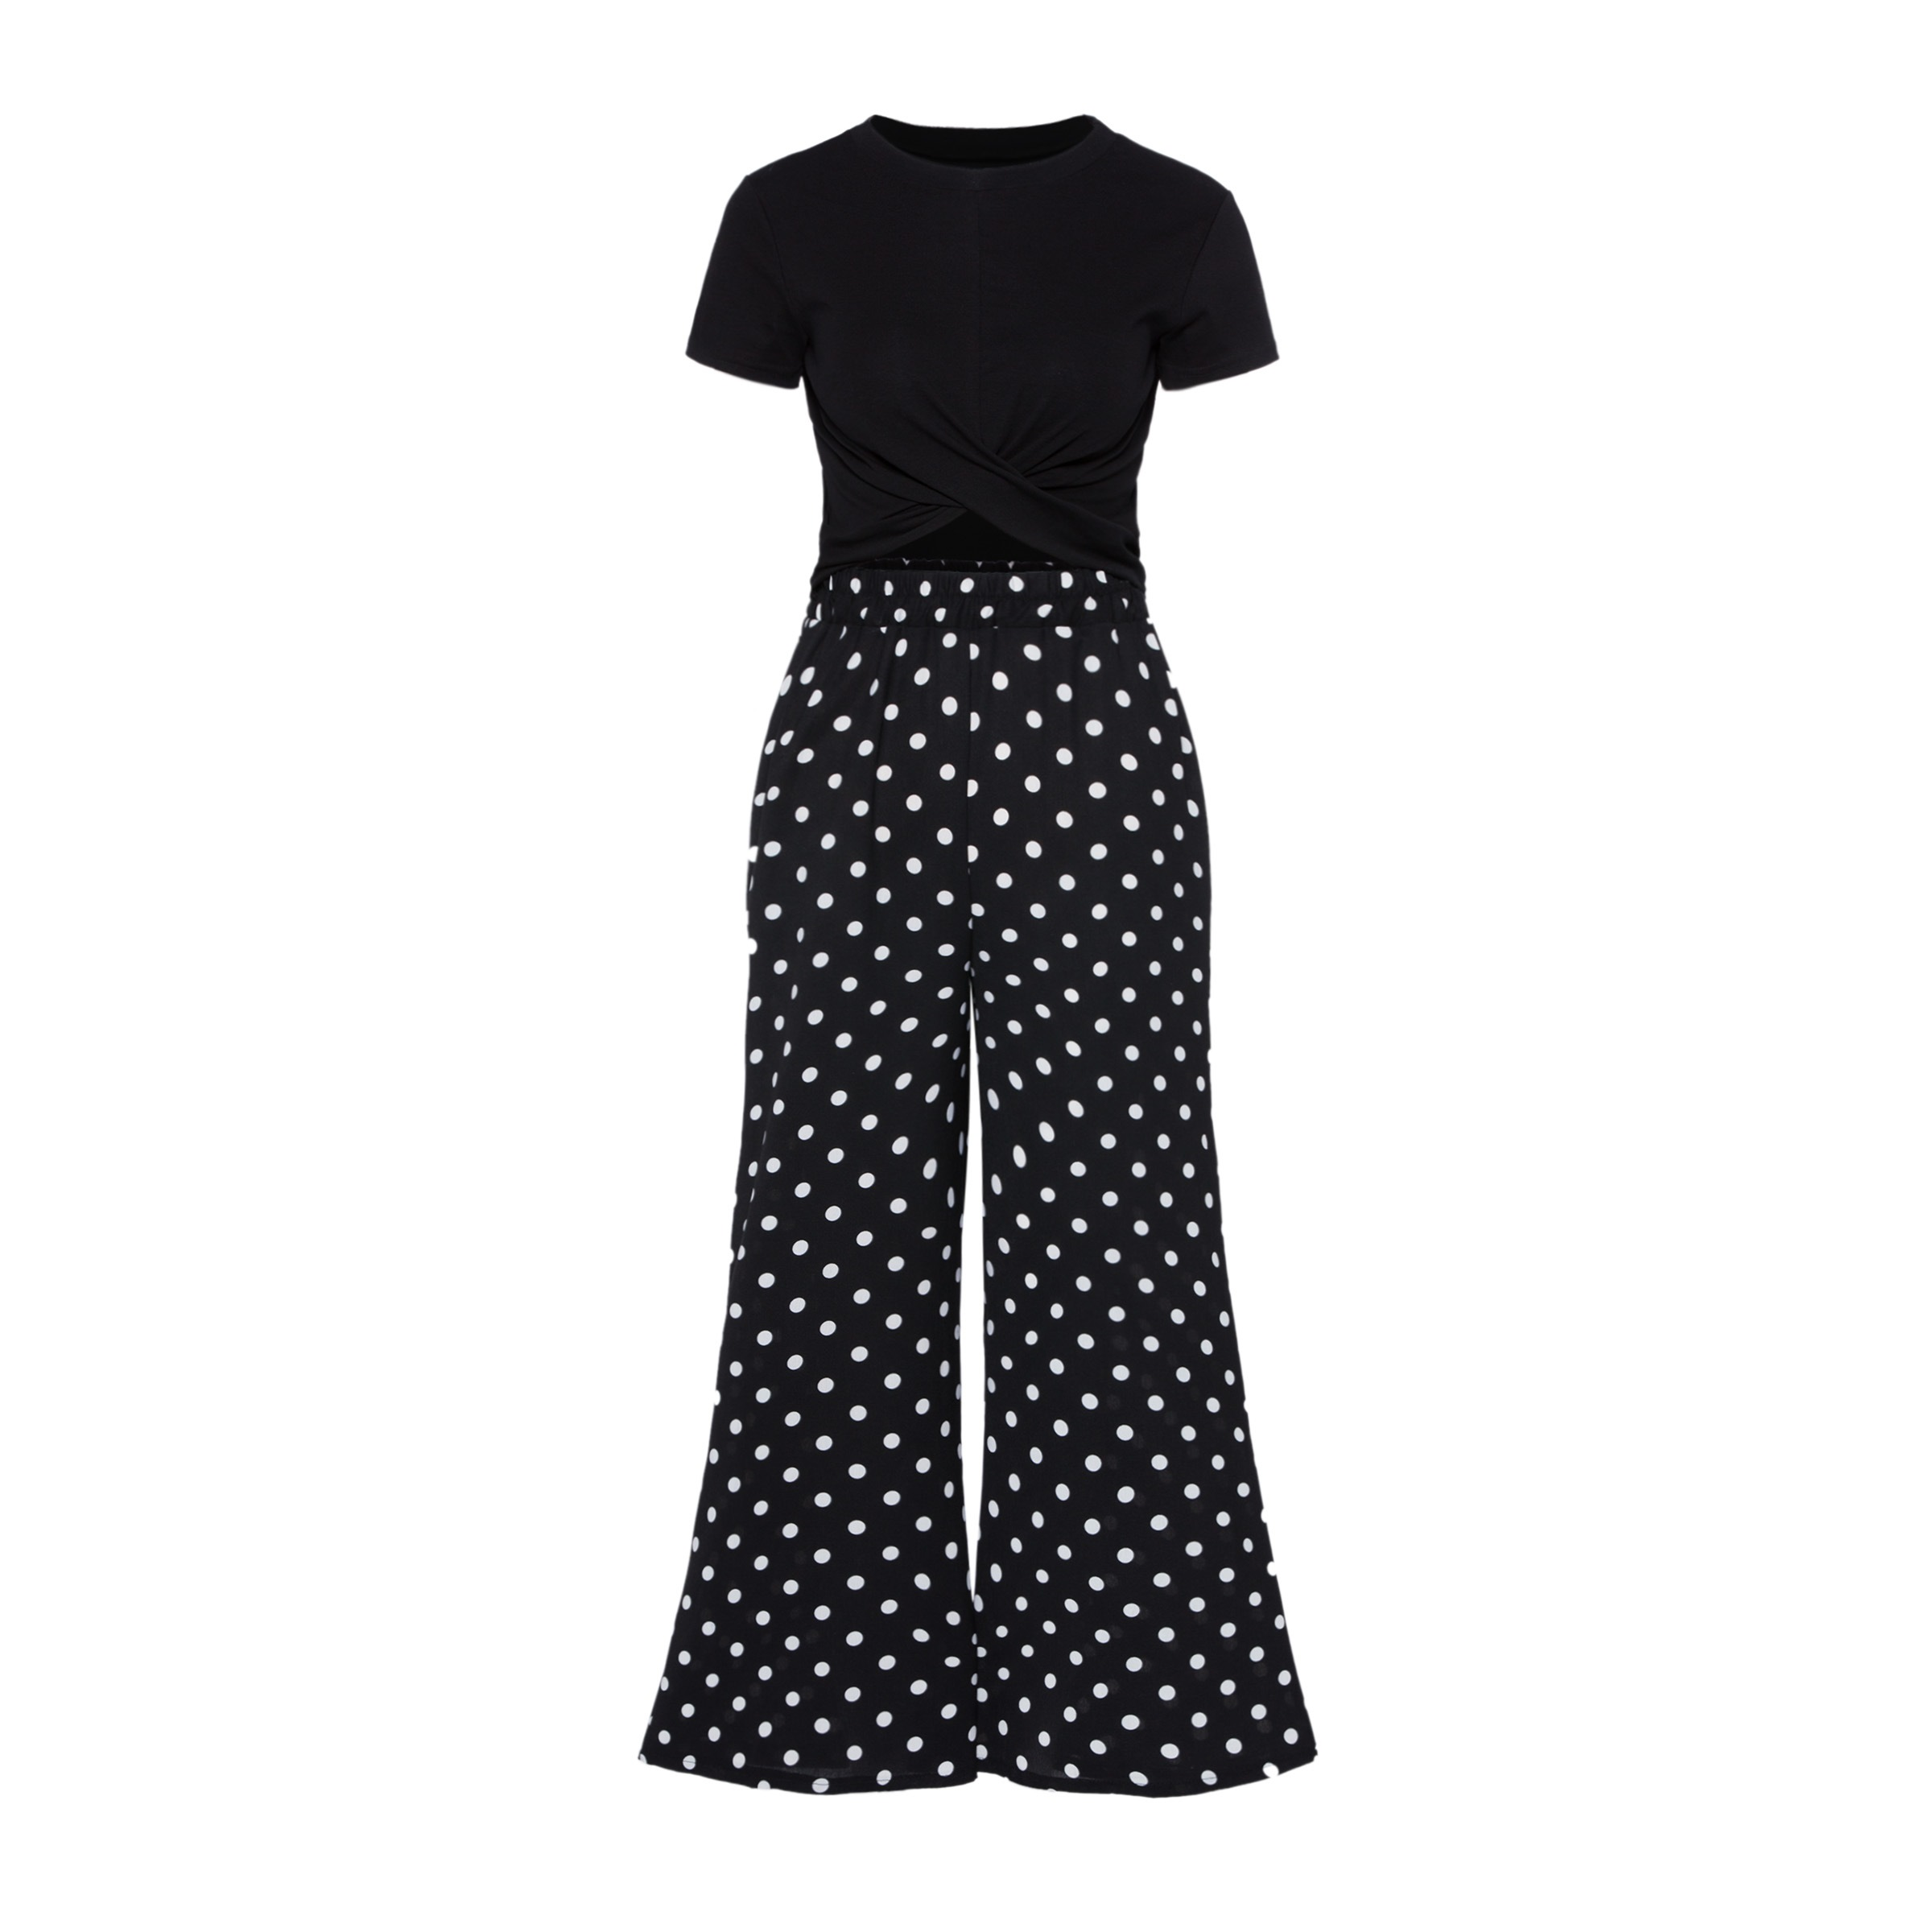 Criss Cross Crop Top with Polka Dots Pants Women's Two Piece Set